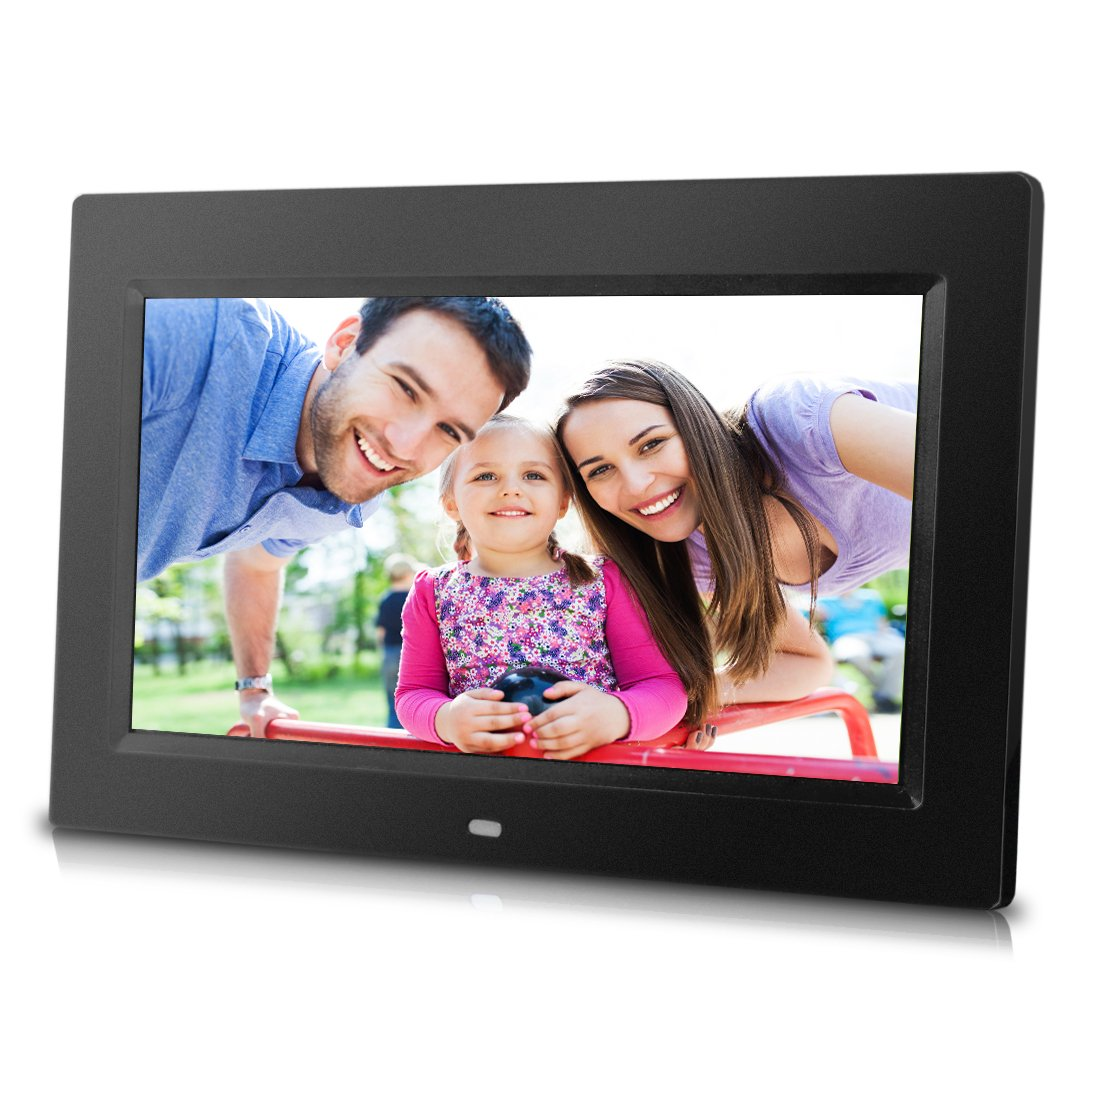 Amazon 10 inch digital photo frame with remote control high amazon 10 inch digital photo frame with remote control high resolution 1024x600 lcd screen built in slideshow adjustable interval time jeuxipadfo Choice Image